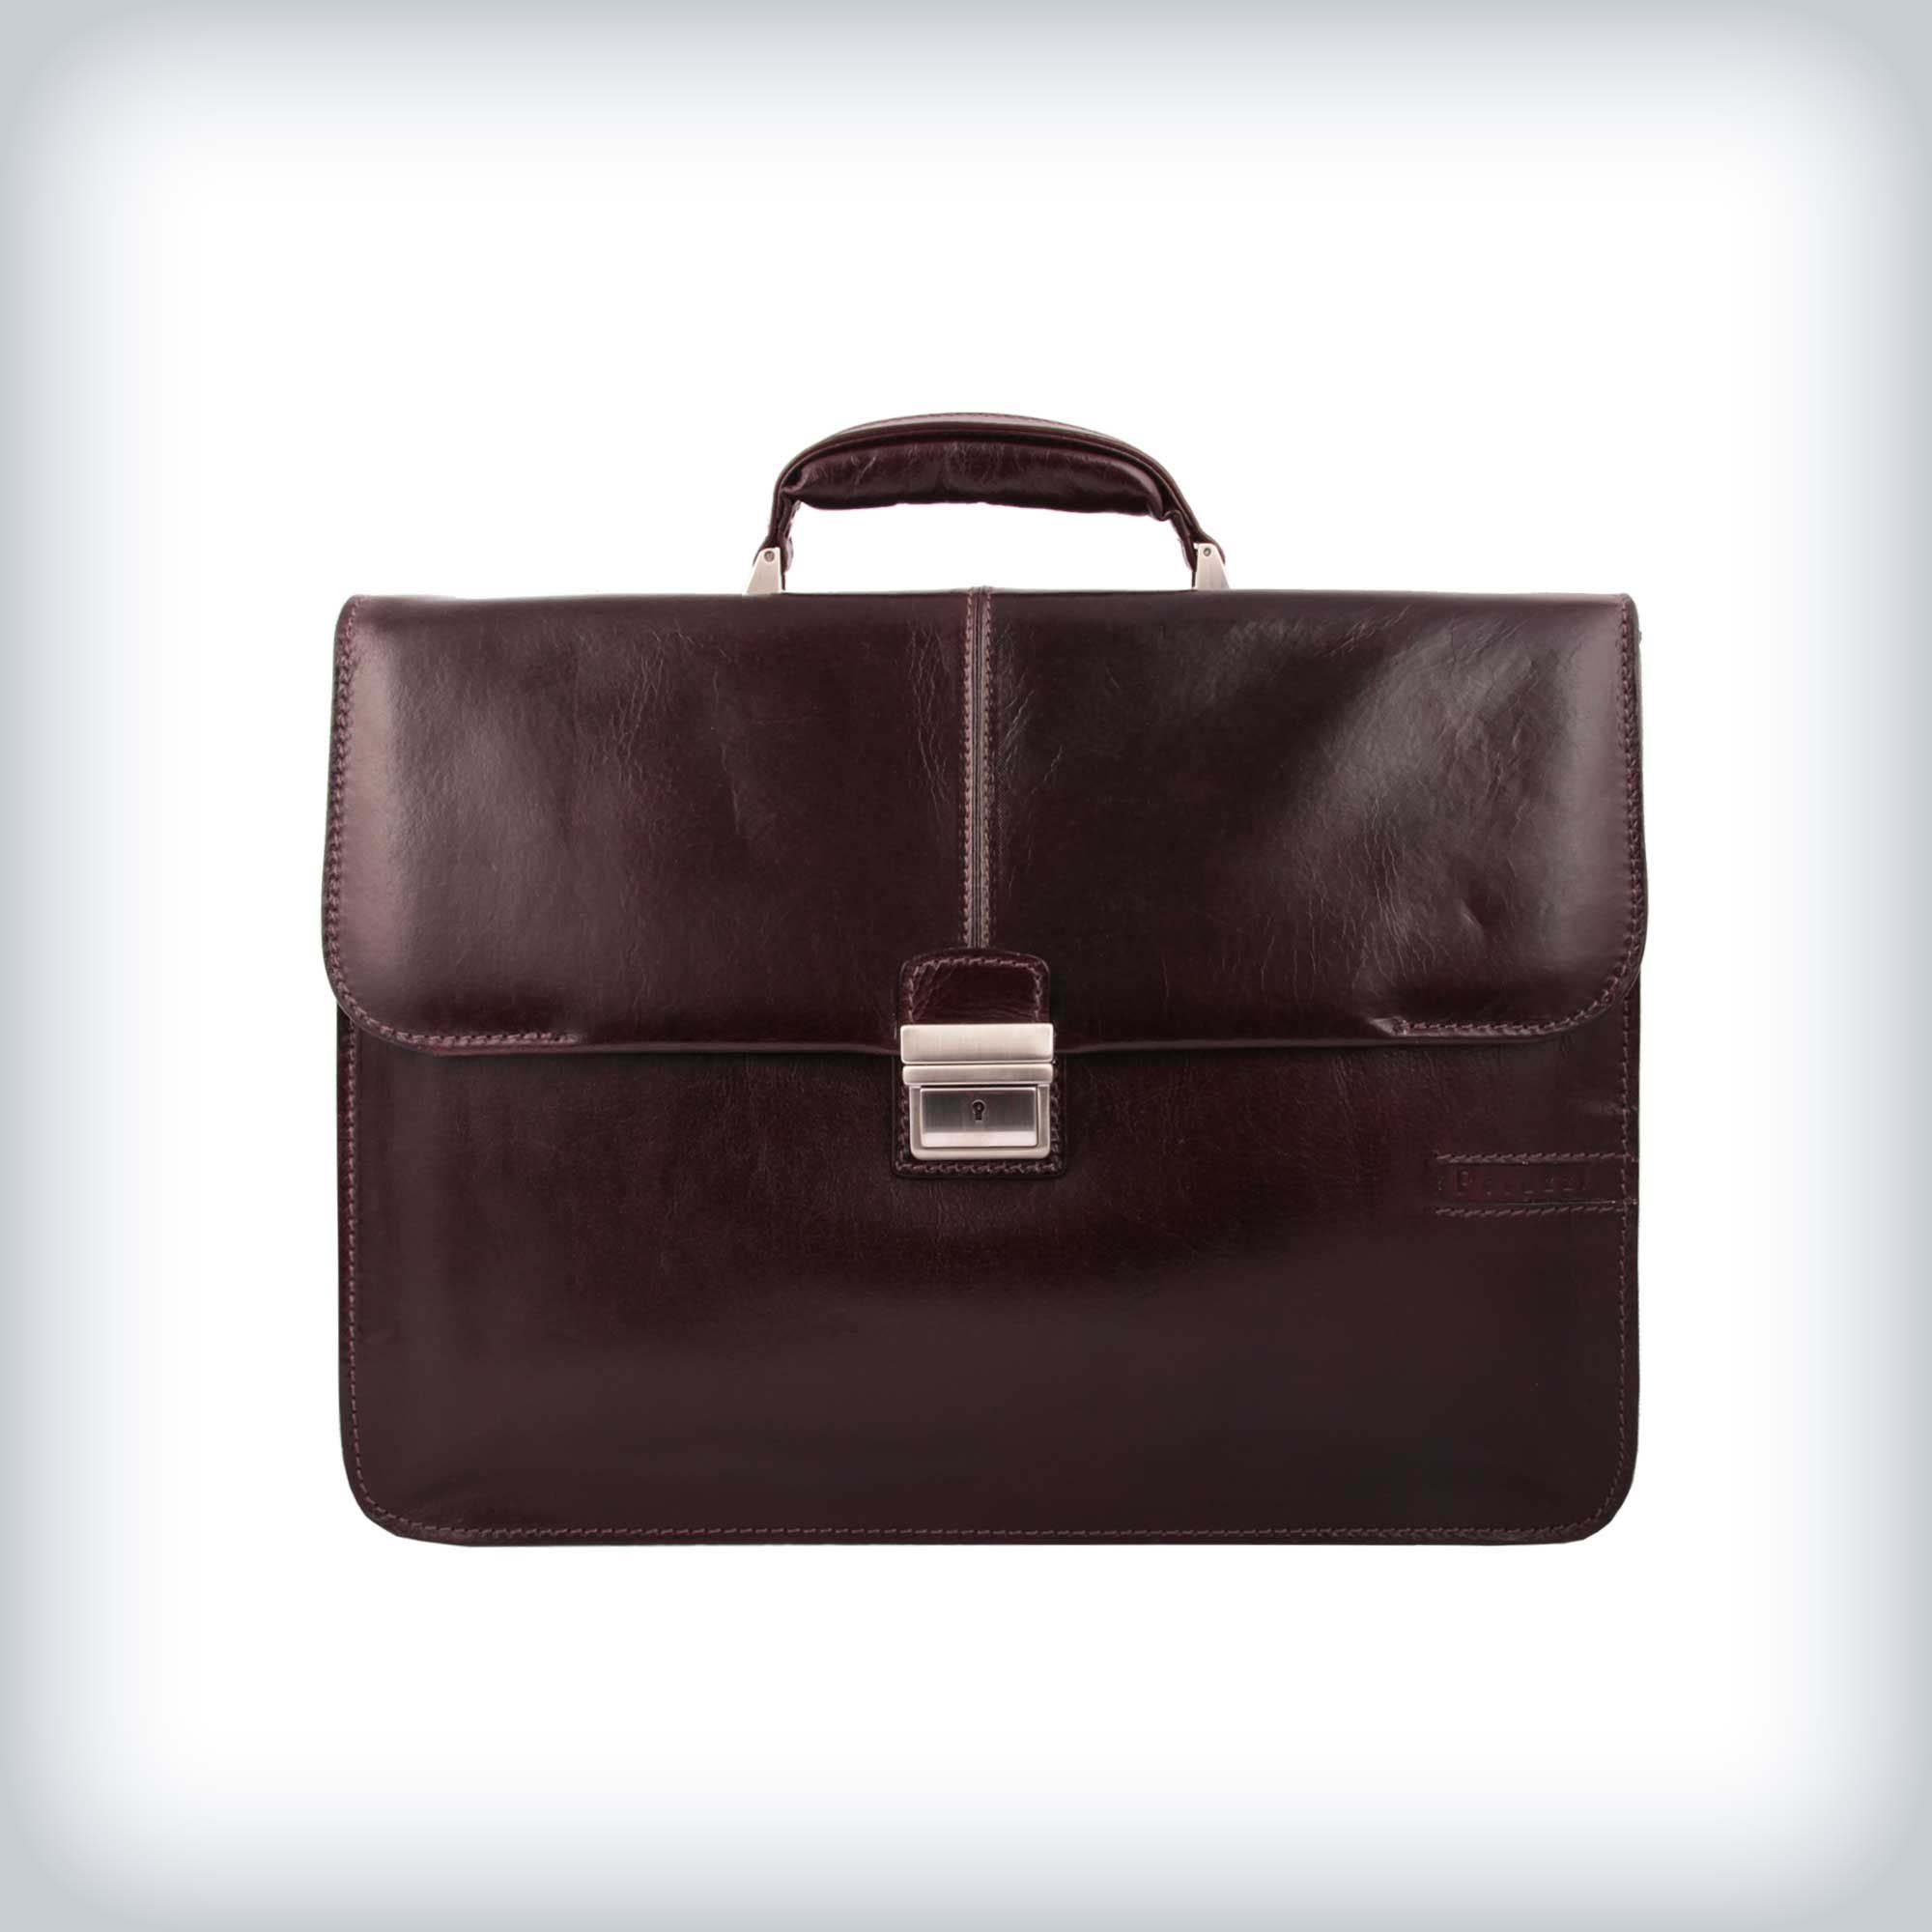 Leather Vintage Briefcase Peruzzi